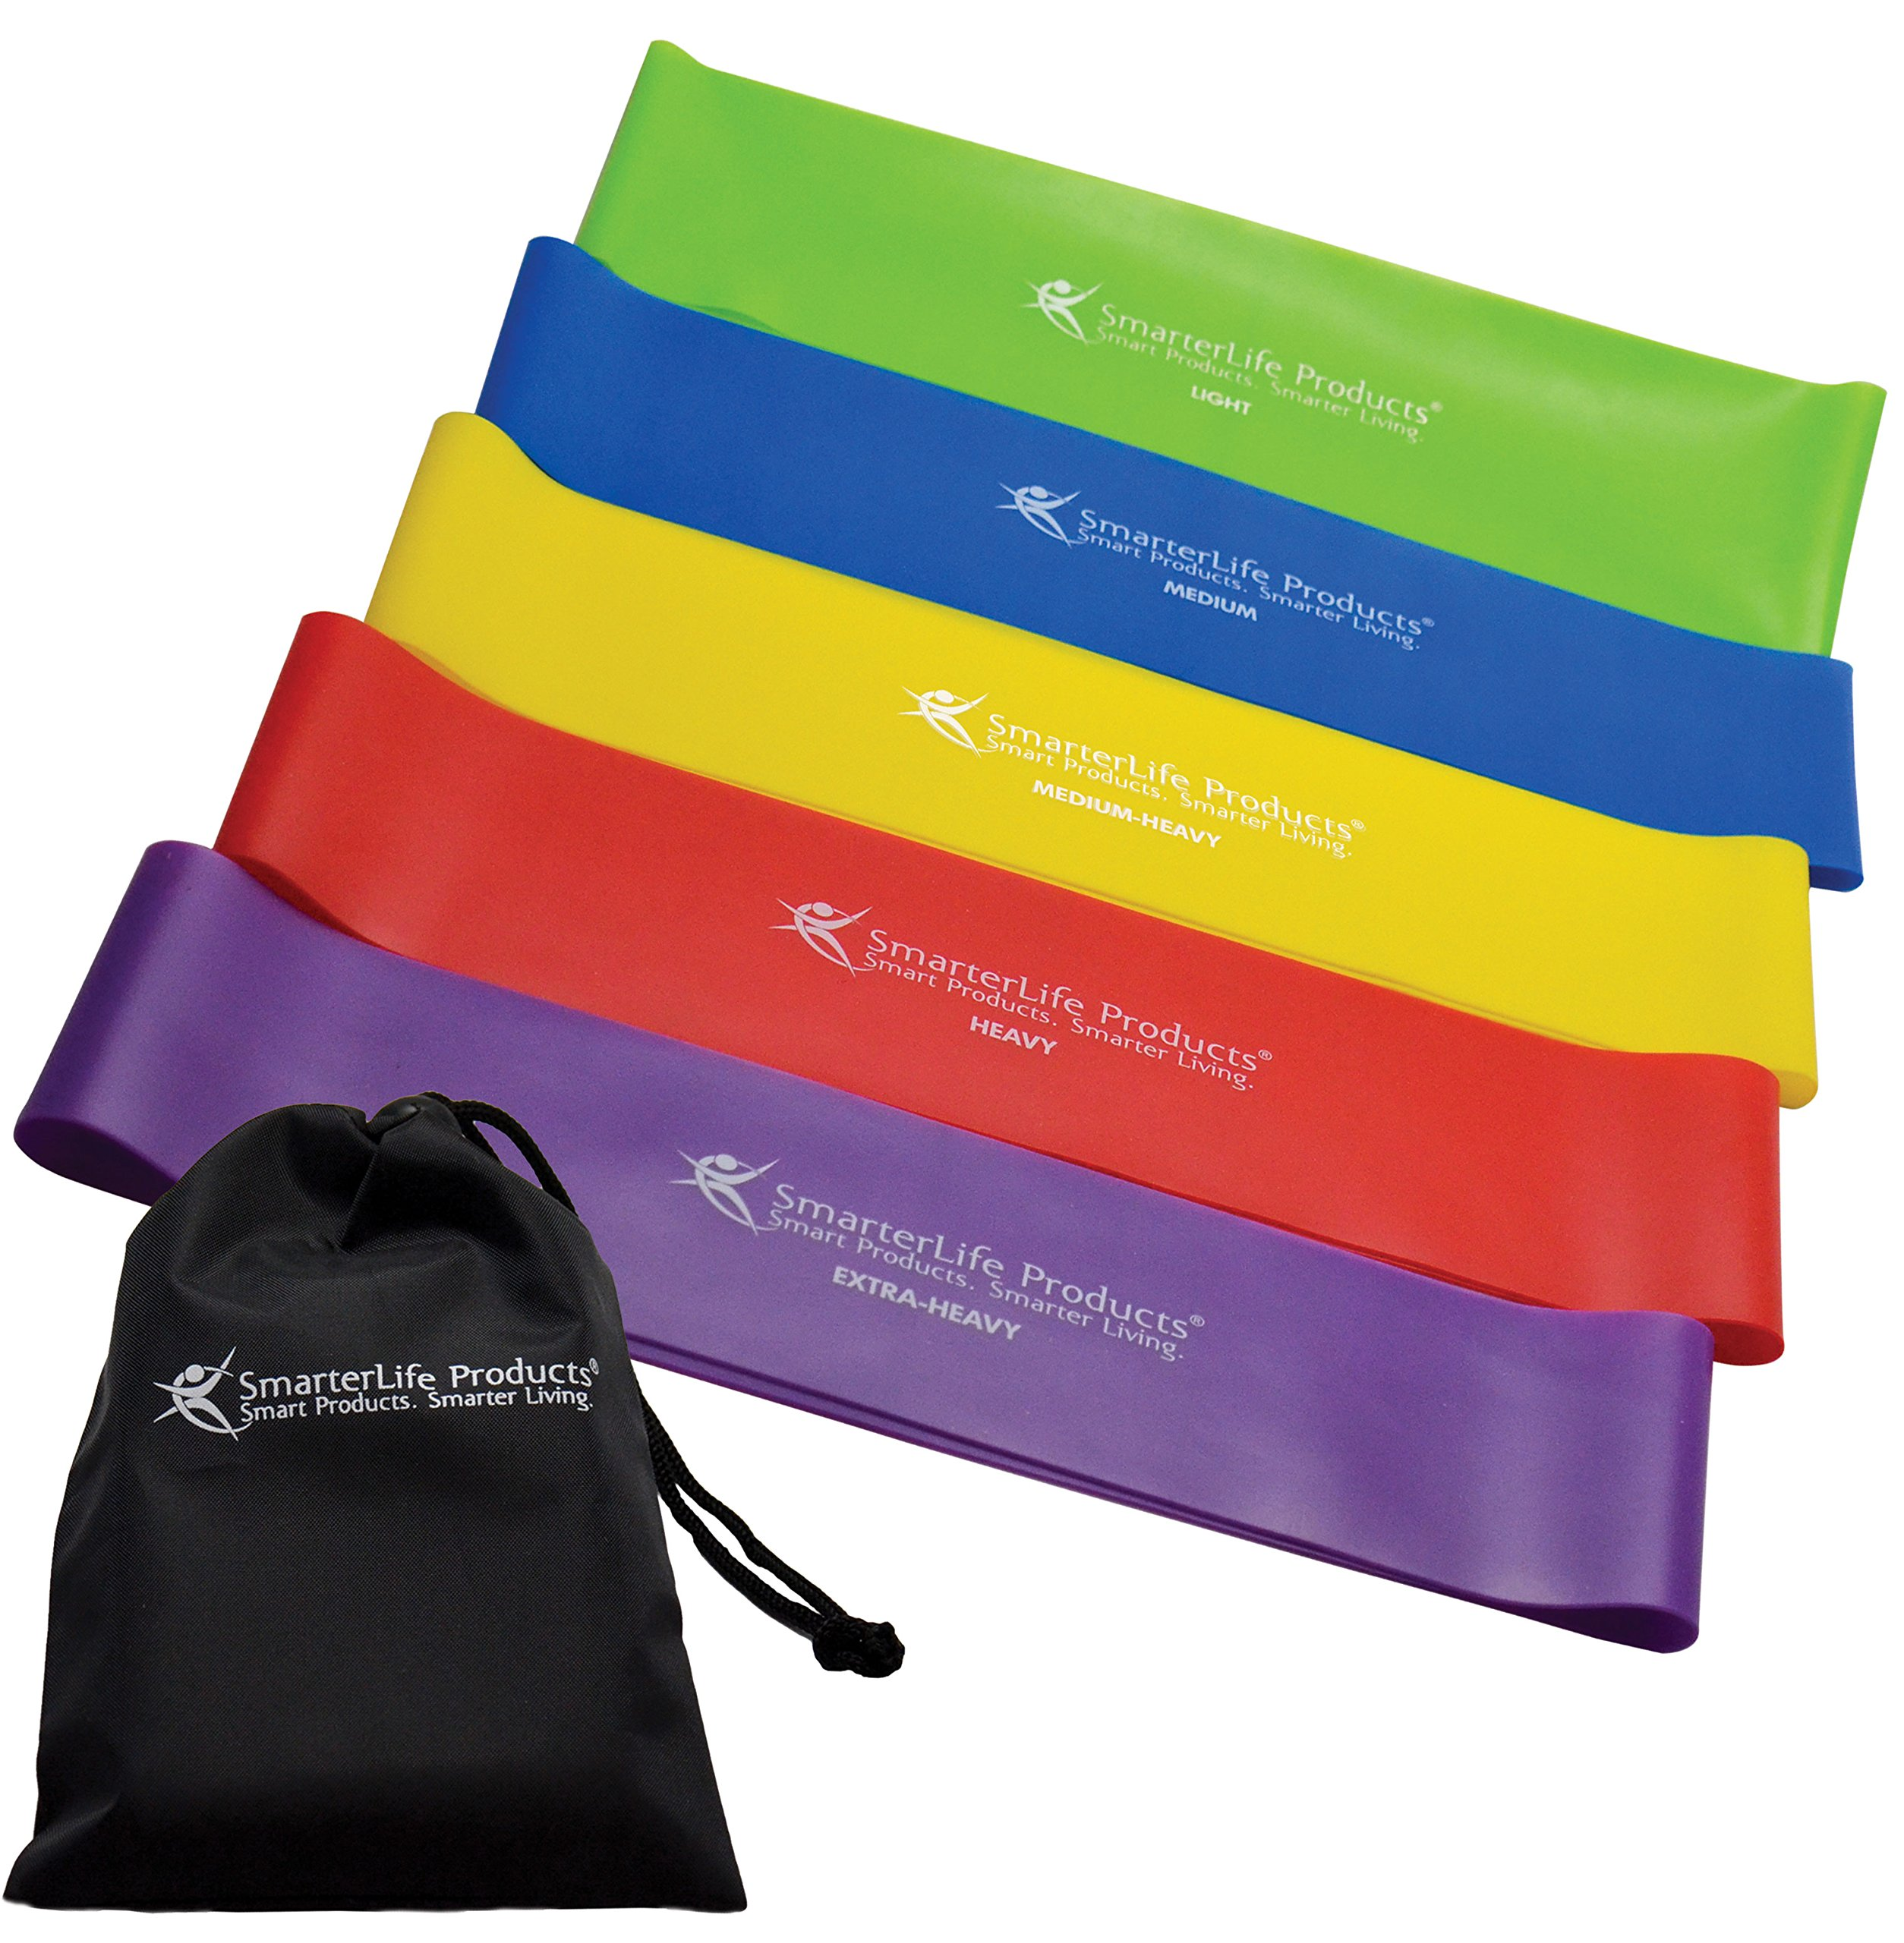 Resistance Bands by SmarterLife - Extra Wide Exercise Bands Prevent Folding, Twisting - Non-Latex, Anti-Snap Resistance Band Design - Workout Bands for Resistance Training, Pilates, Physical Therapy